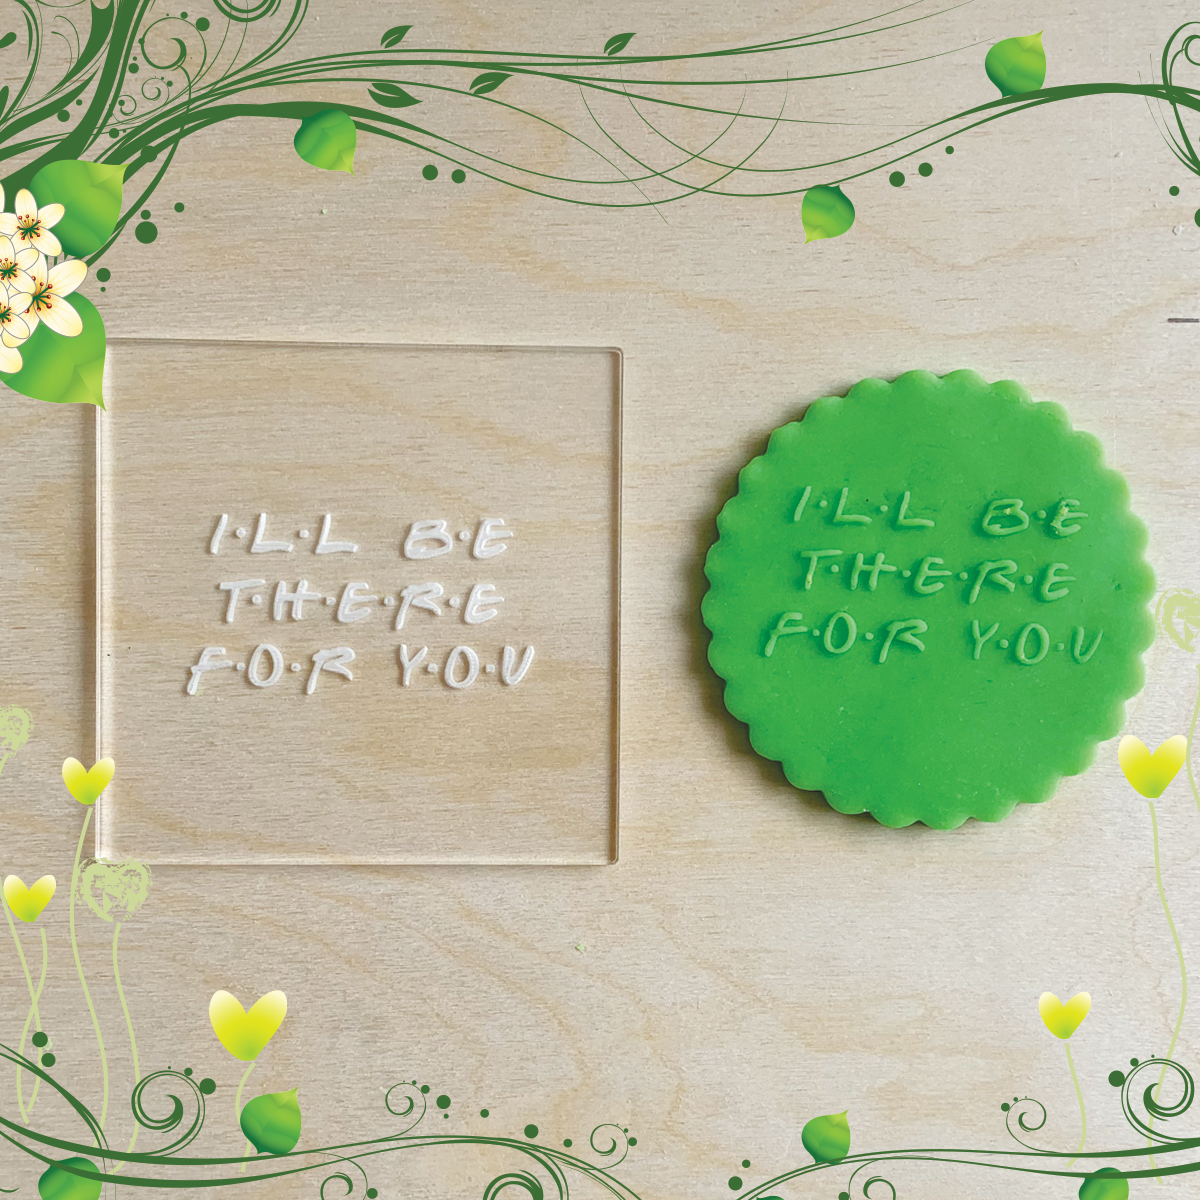 Acrylic Outbosser Embosser cookies stamps for sugar paste cupcakes Type